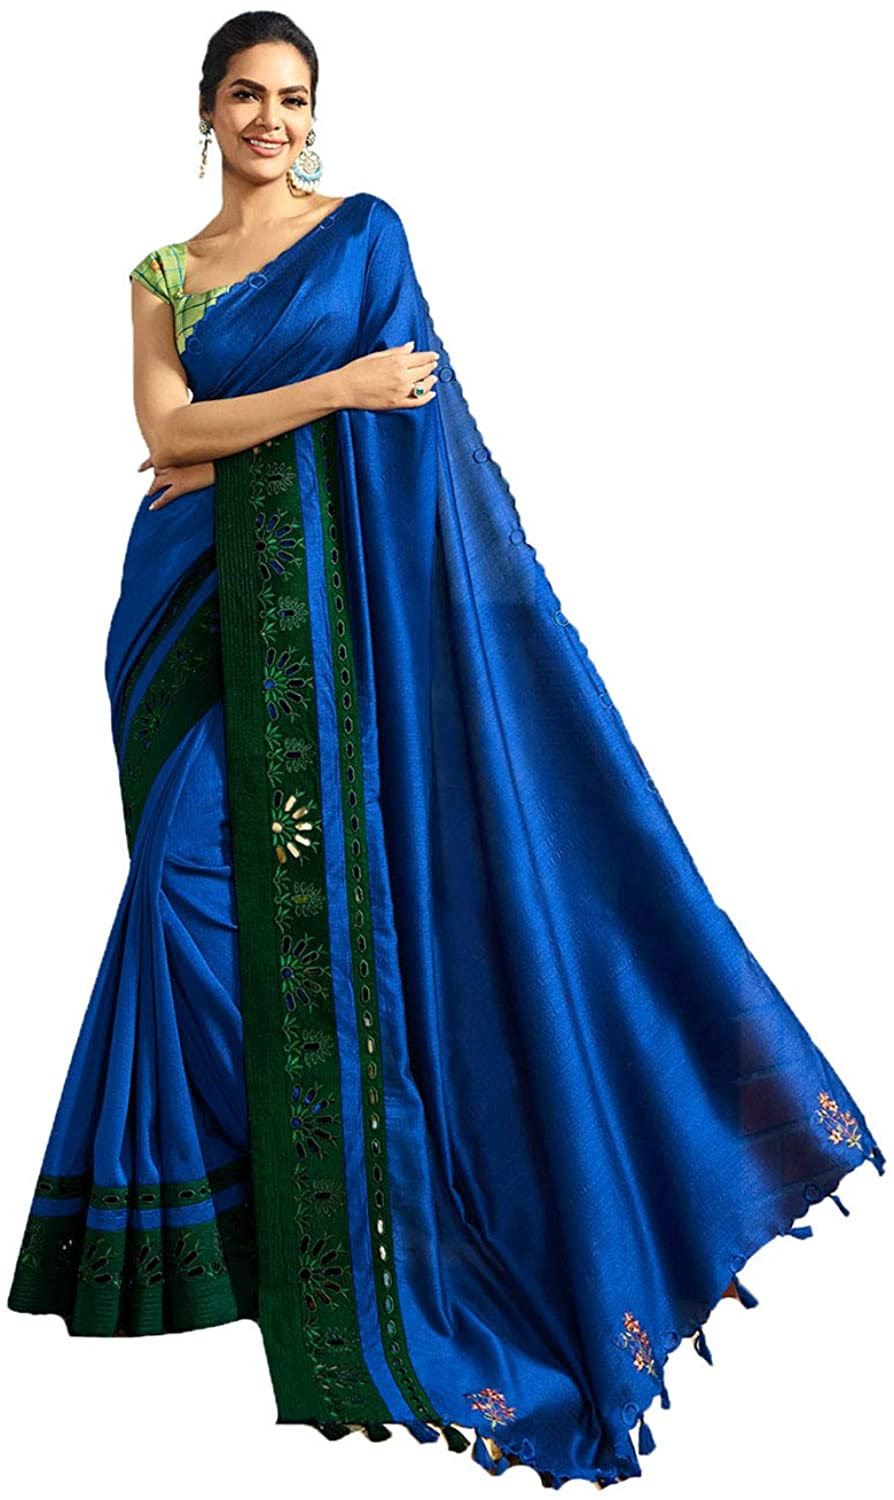 Saree for Women Bollywood Wedding Designer Blue Sari with Unstitched Blouse. ICW2523-13